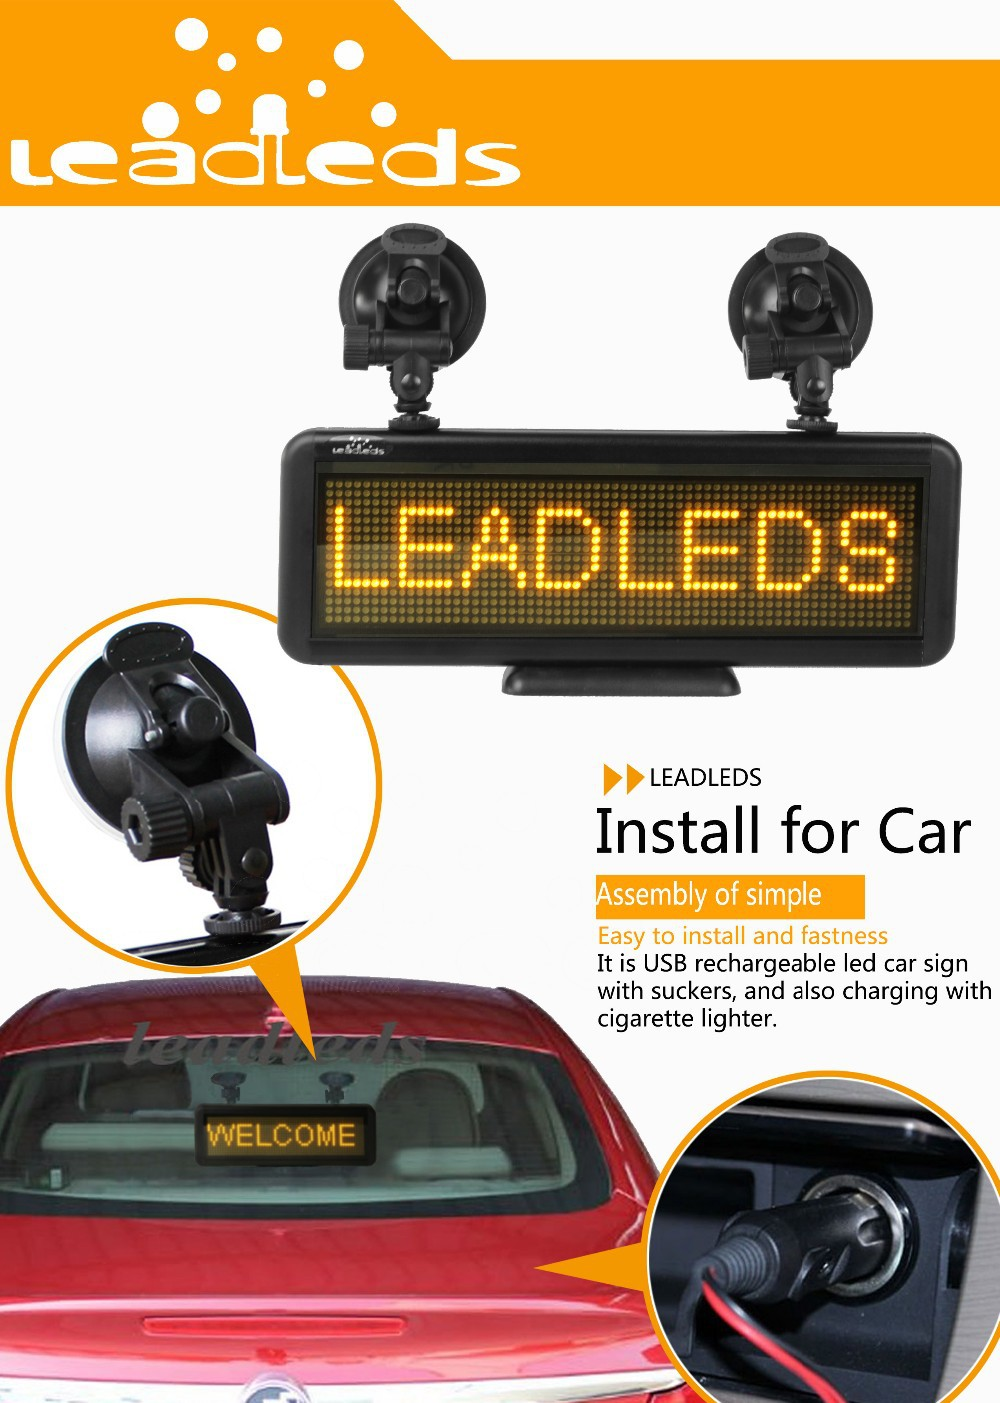 Leadleds Multipurpose Led Handheld Sign Led Car Sign Led Tabletop Programmable Sign Board By Android Bluetooth  Pc Send Messages (Amber light)